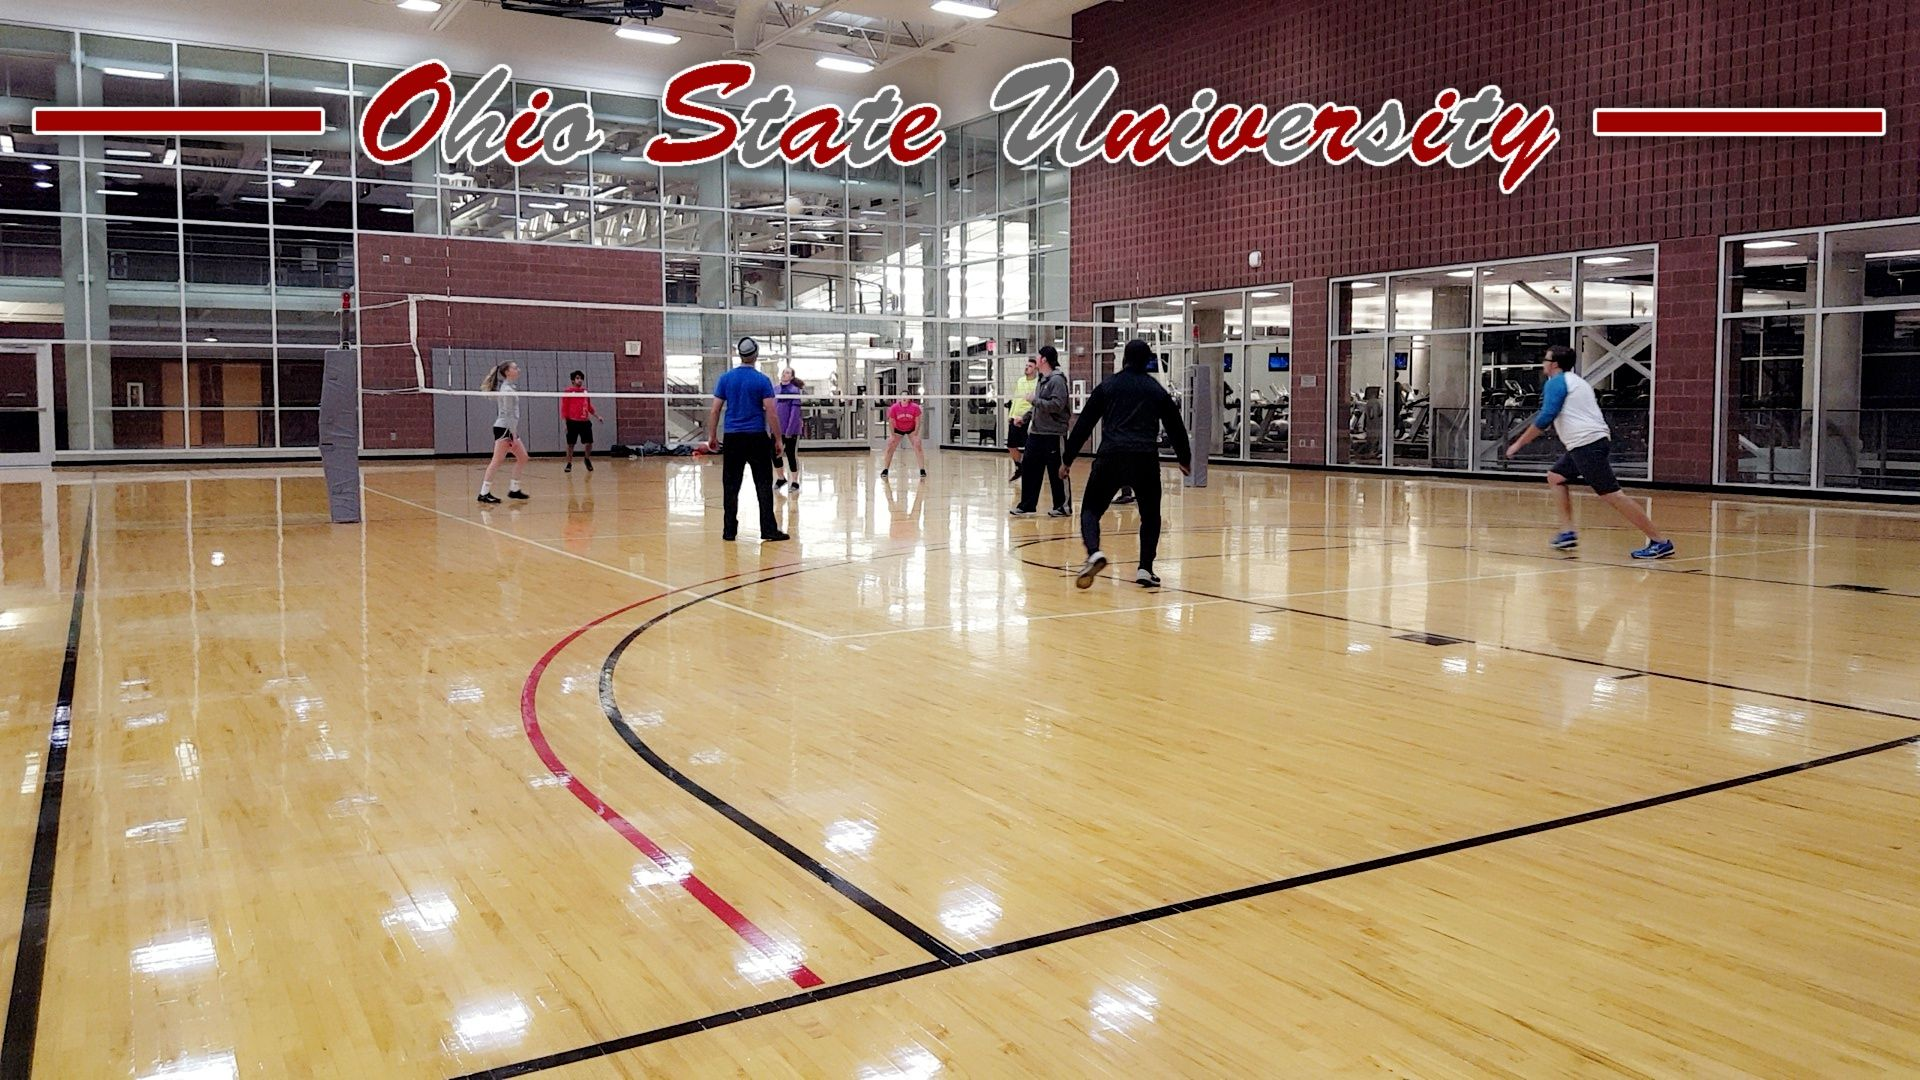 We Had So Much Fun Playing Volleyball At The Rpac At Ohio State University Fitnessfriday Friday Workout Ohio State Ohio